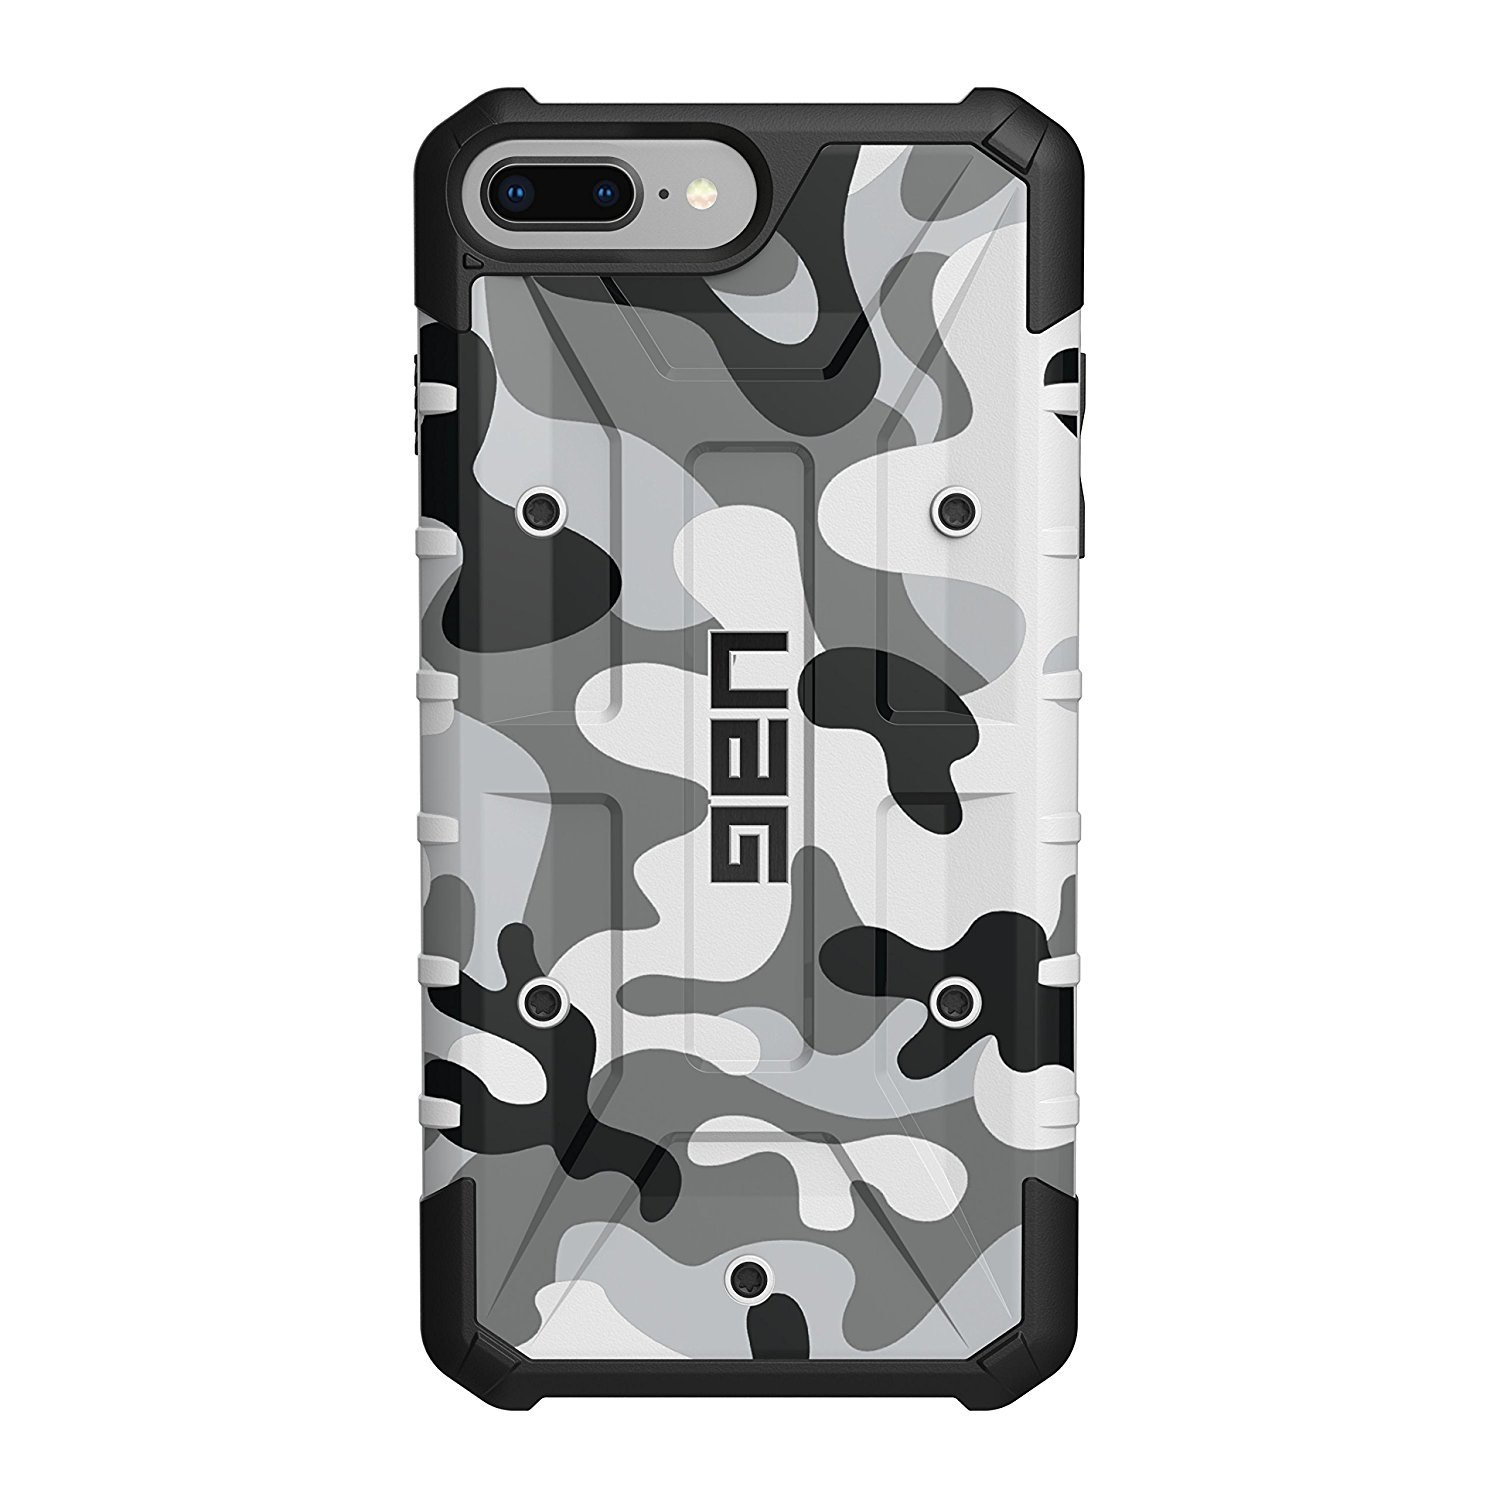 Etui Urban Armor Gear Pathfinder dla iPhone 8 Plus, 7+, 6s+. bok